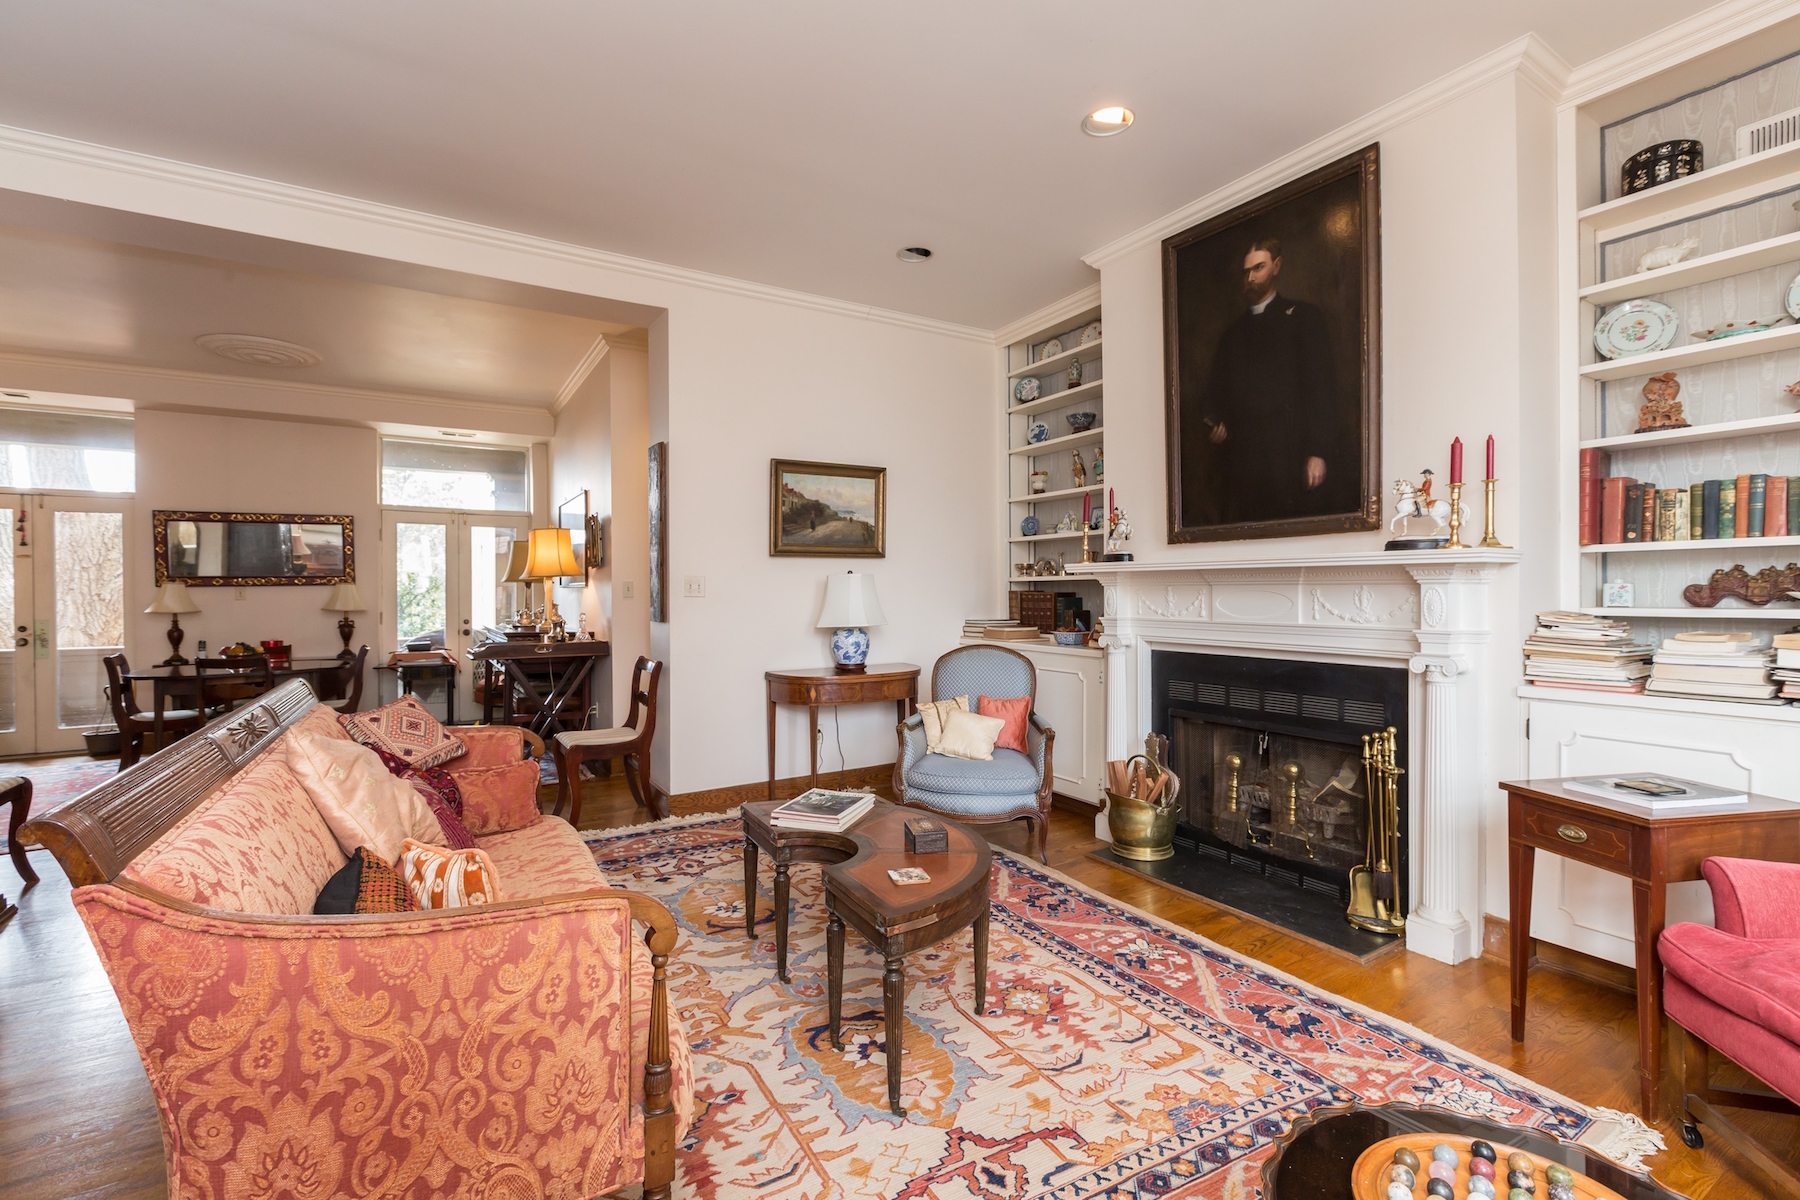 Additional photo for property listing at Rarely Available: Historic Georgetown Condominium 1527 30th Street Nw B21 Washington, District De Columbia 20007 États-Unis